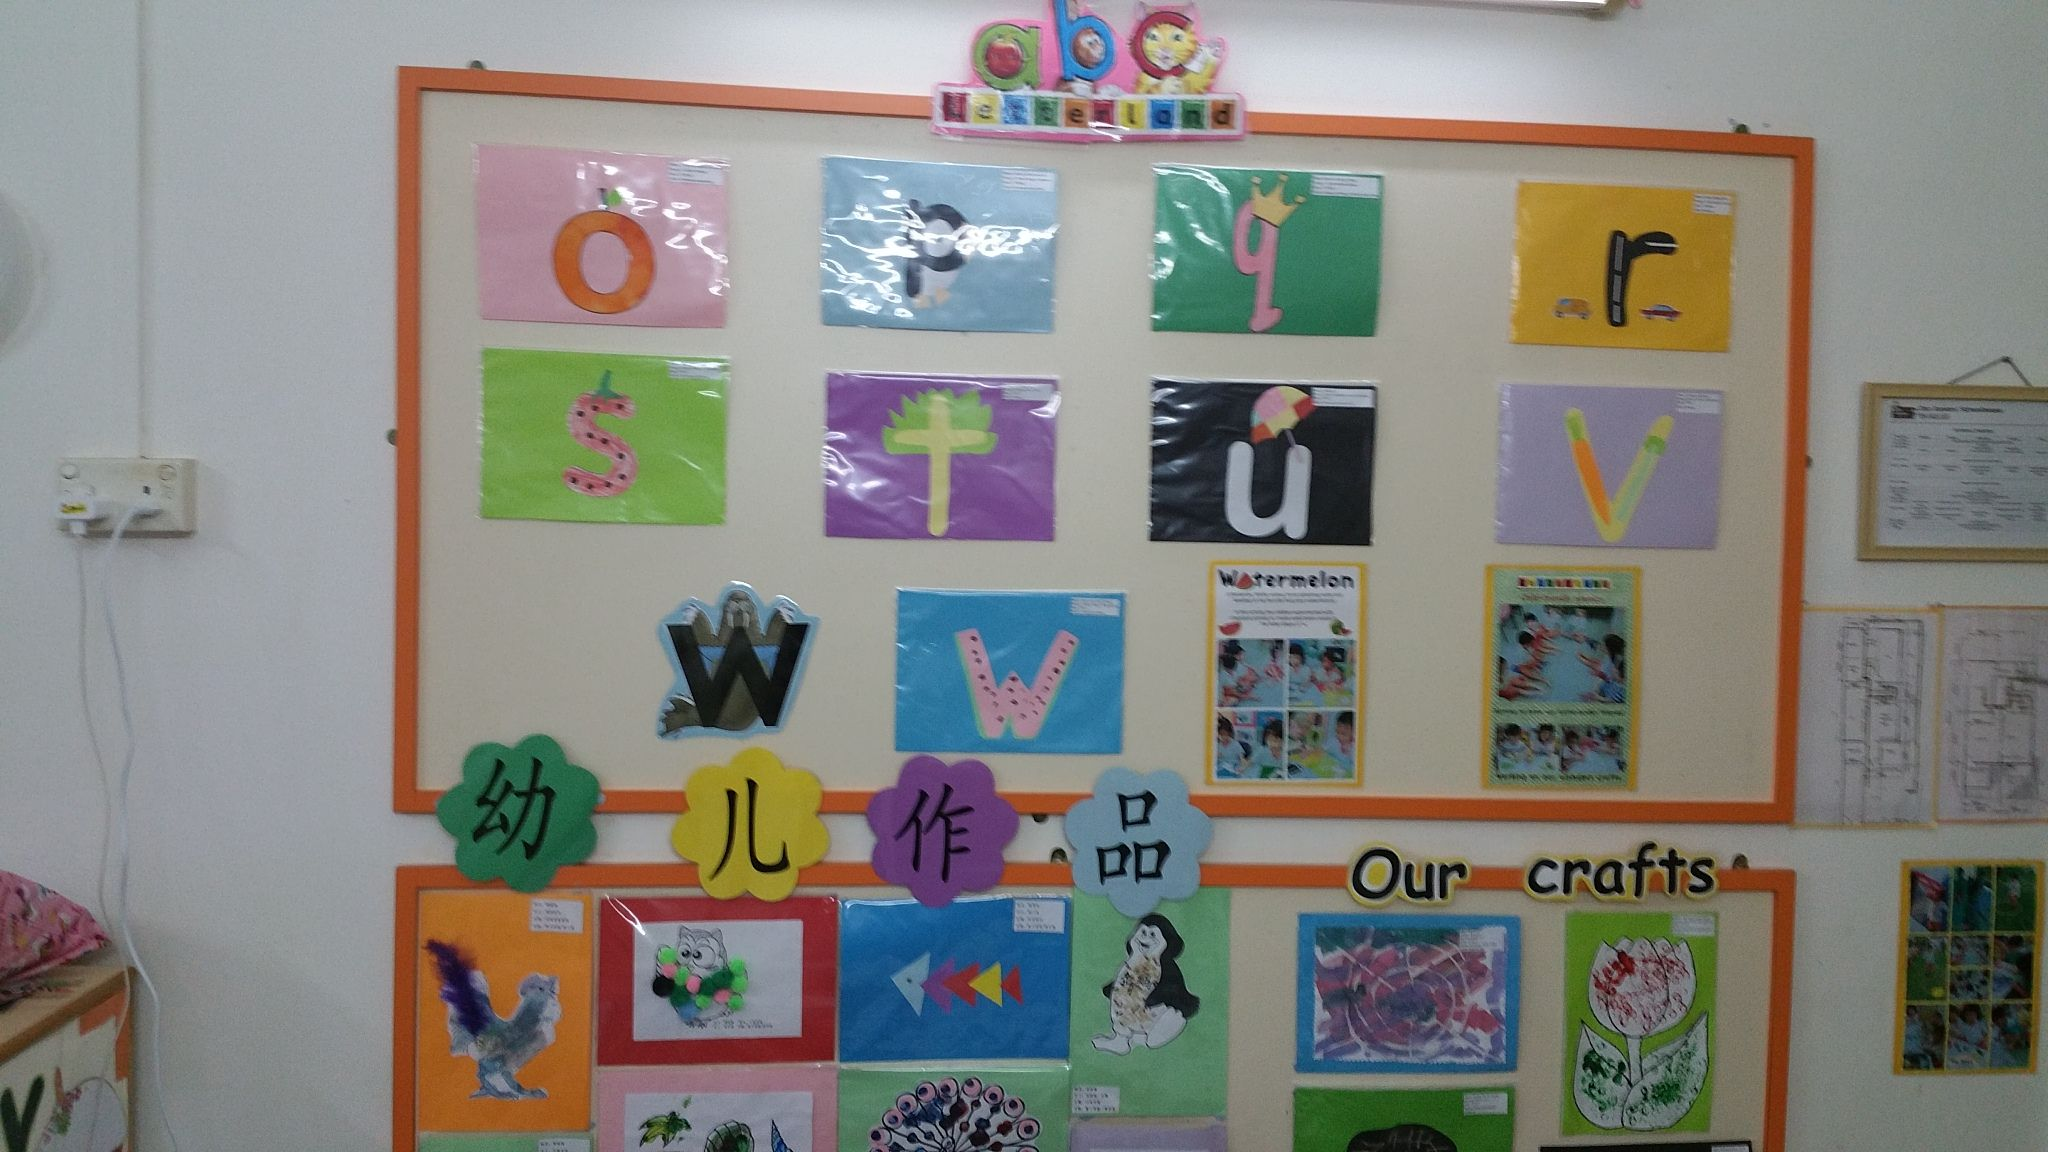 Letterland cum alphabet and thematic board / crafts - o to w